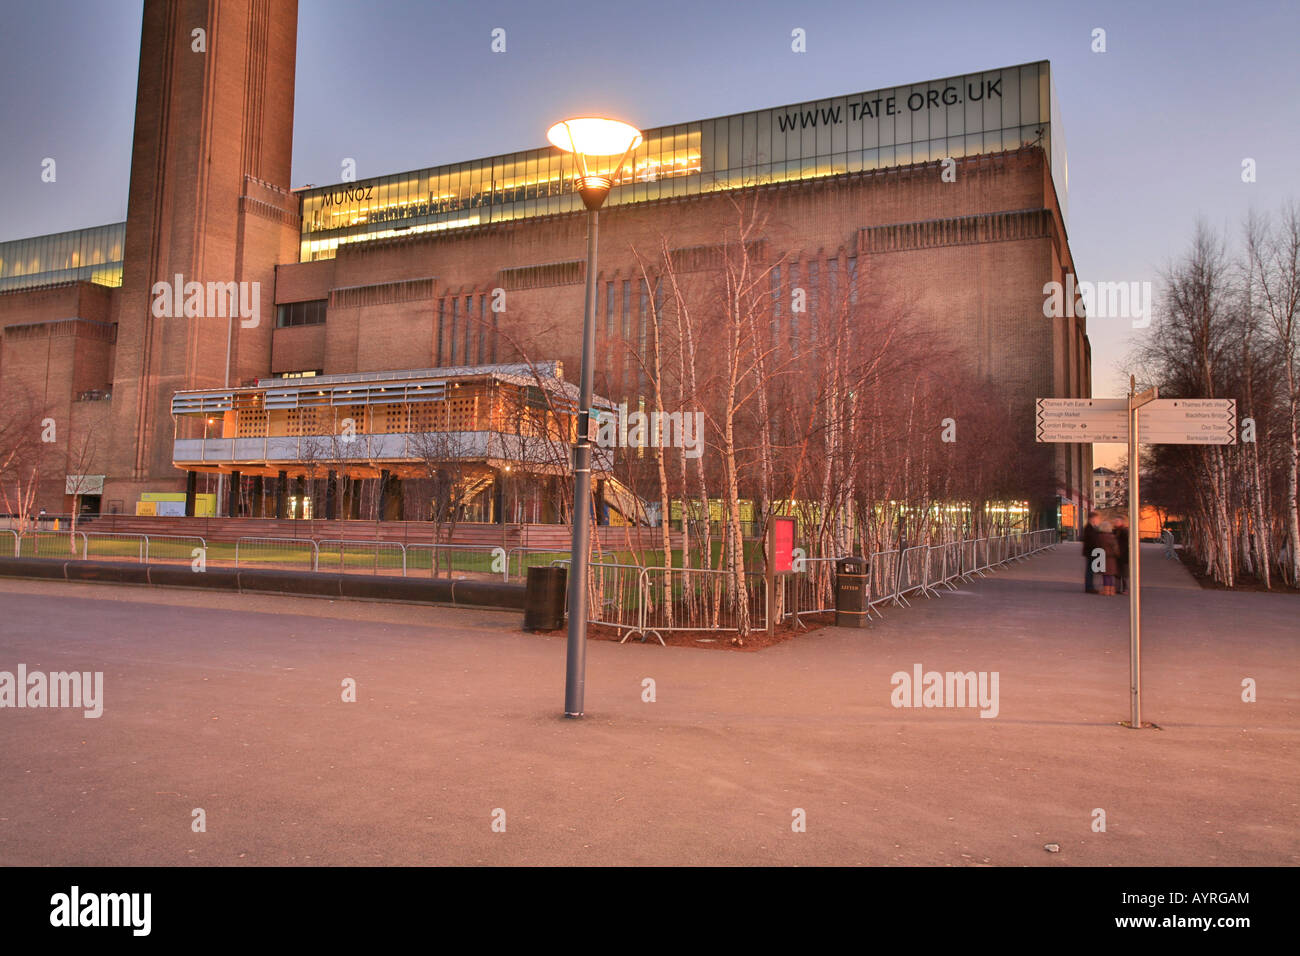 Tate Modern Gallery, London, England, UK Stockbild